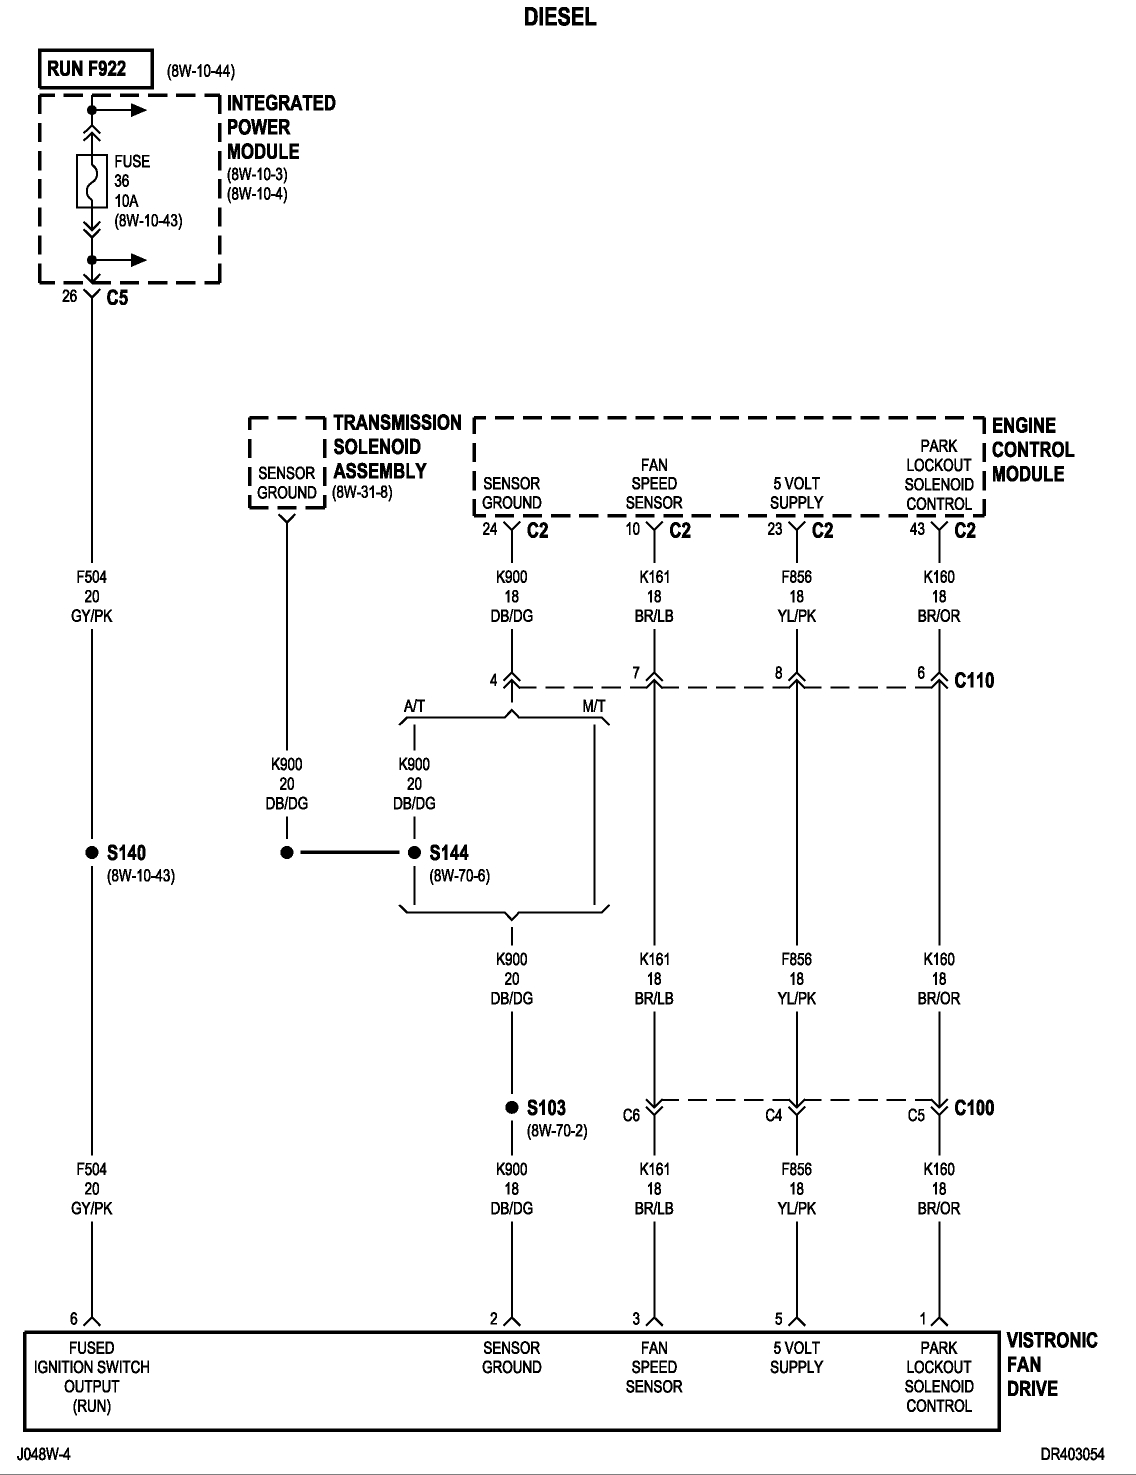 2005 Dodge Ram 2500 Diesel Wiring Diagram